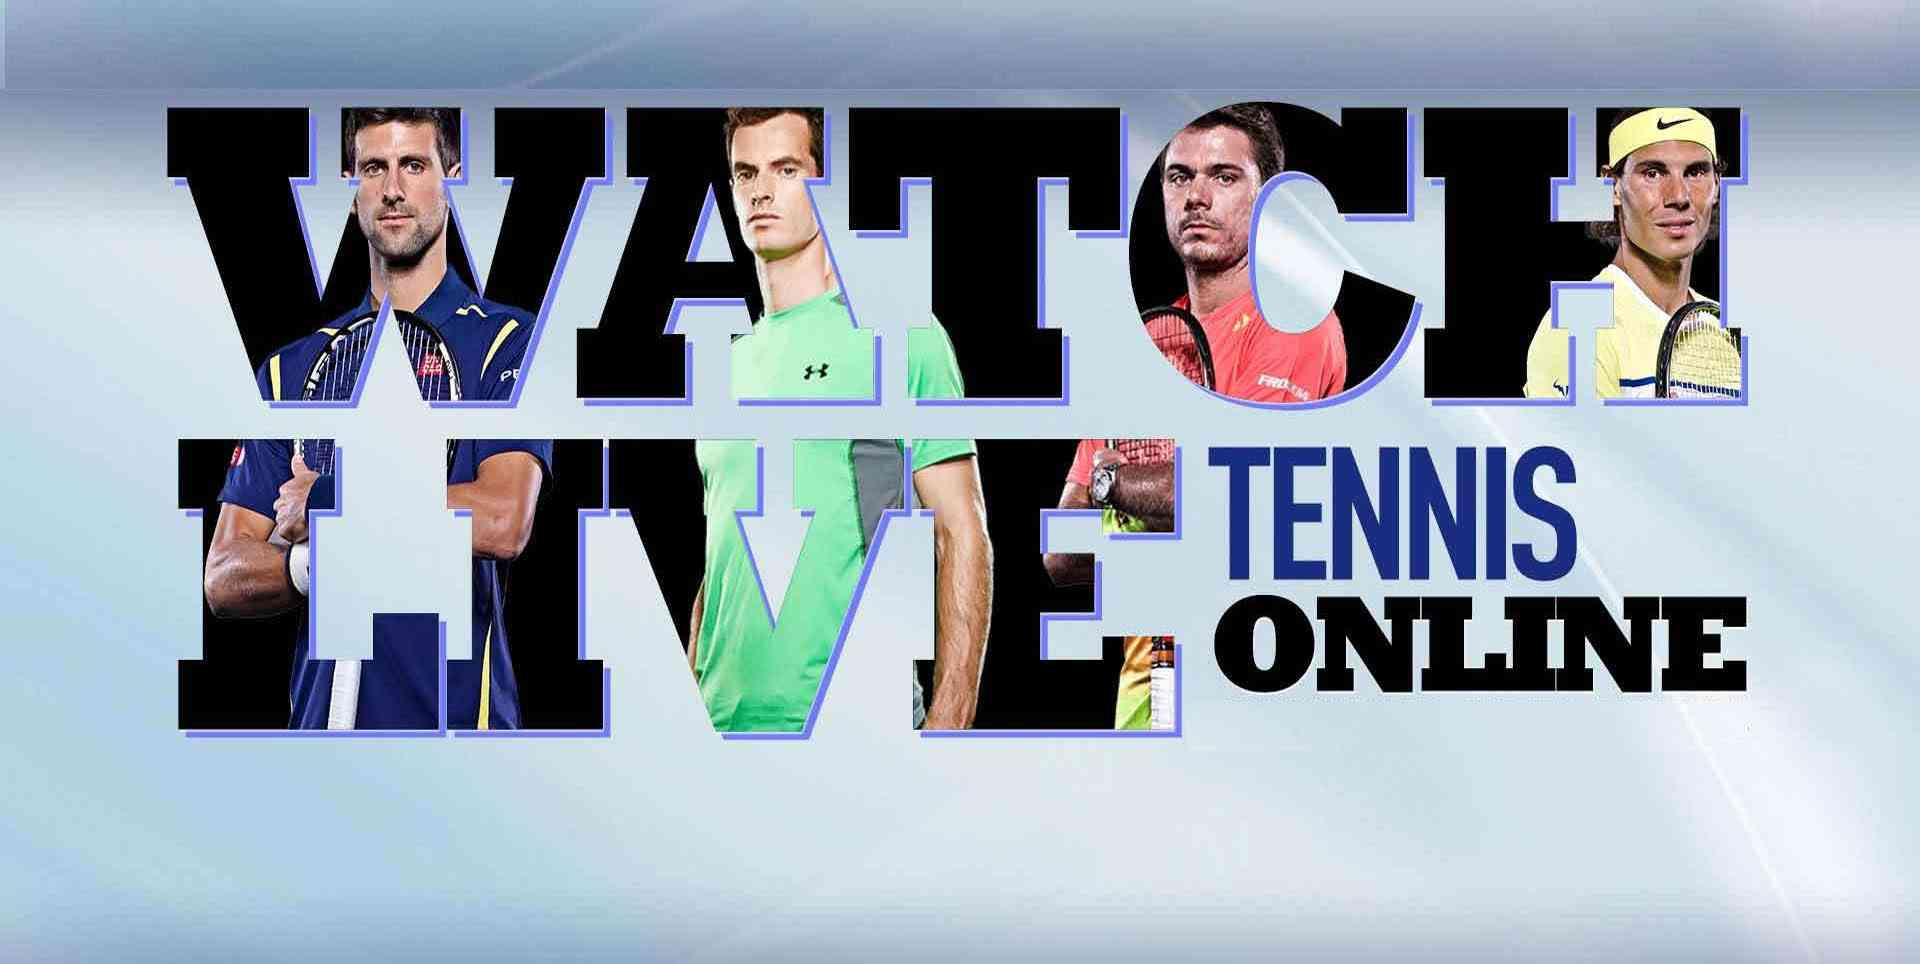 watch-3rd-round-m.-keys-vs-y.-shvedova-online